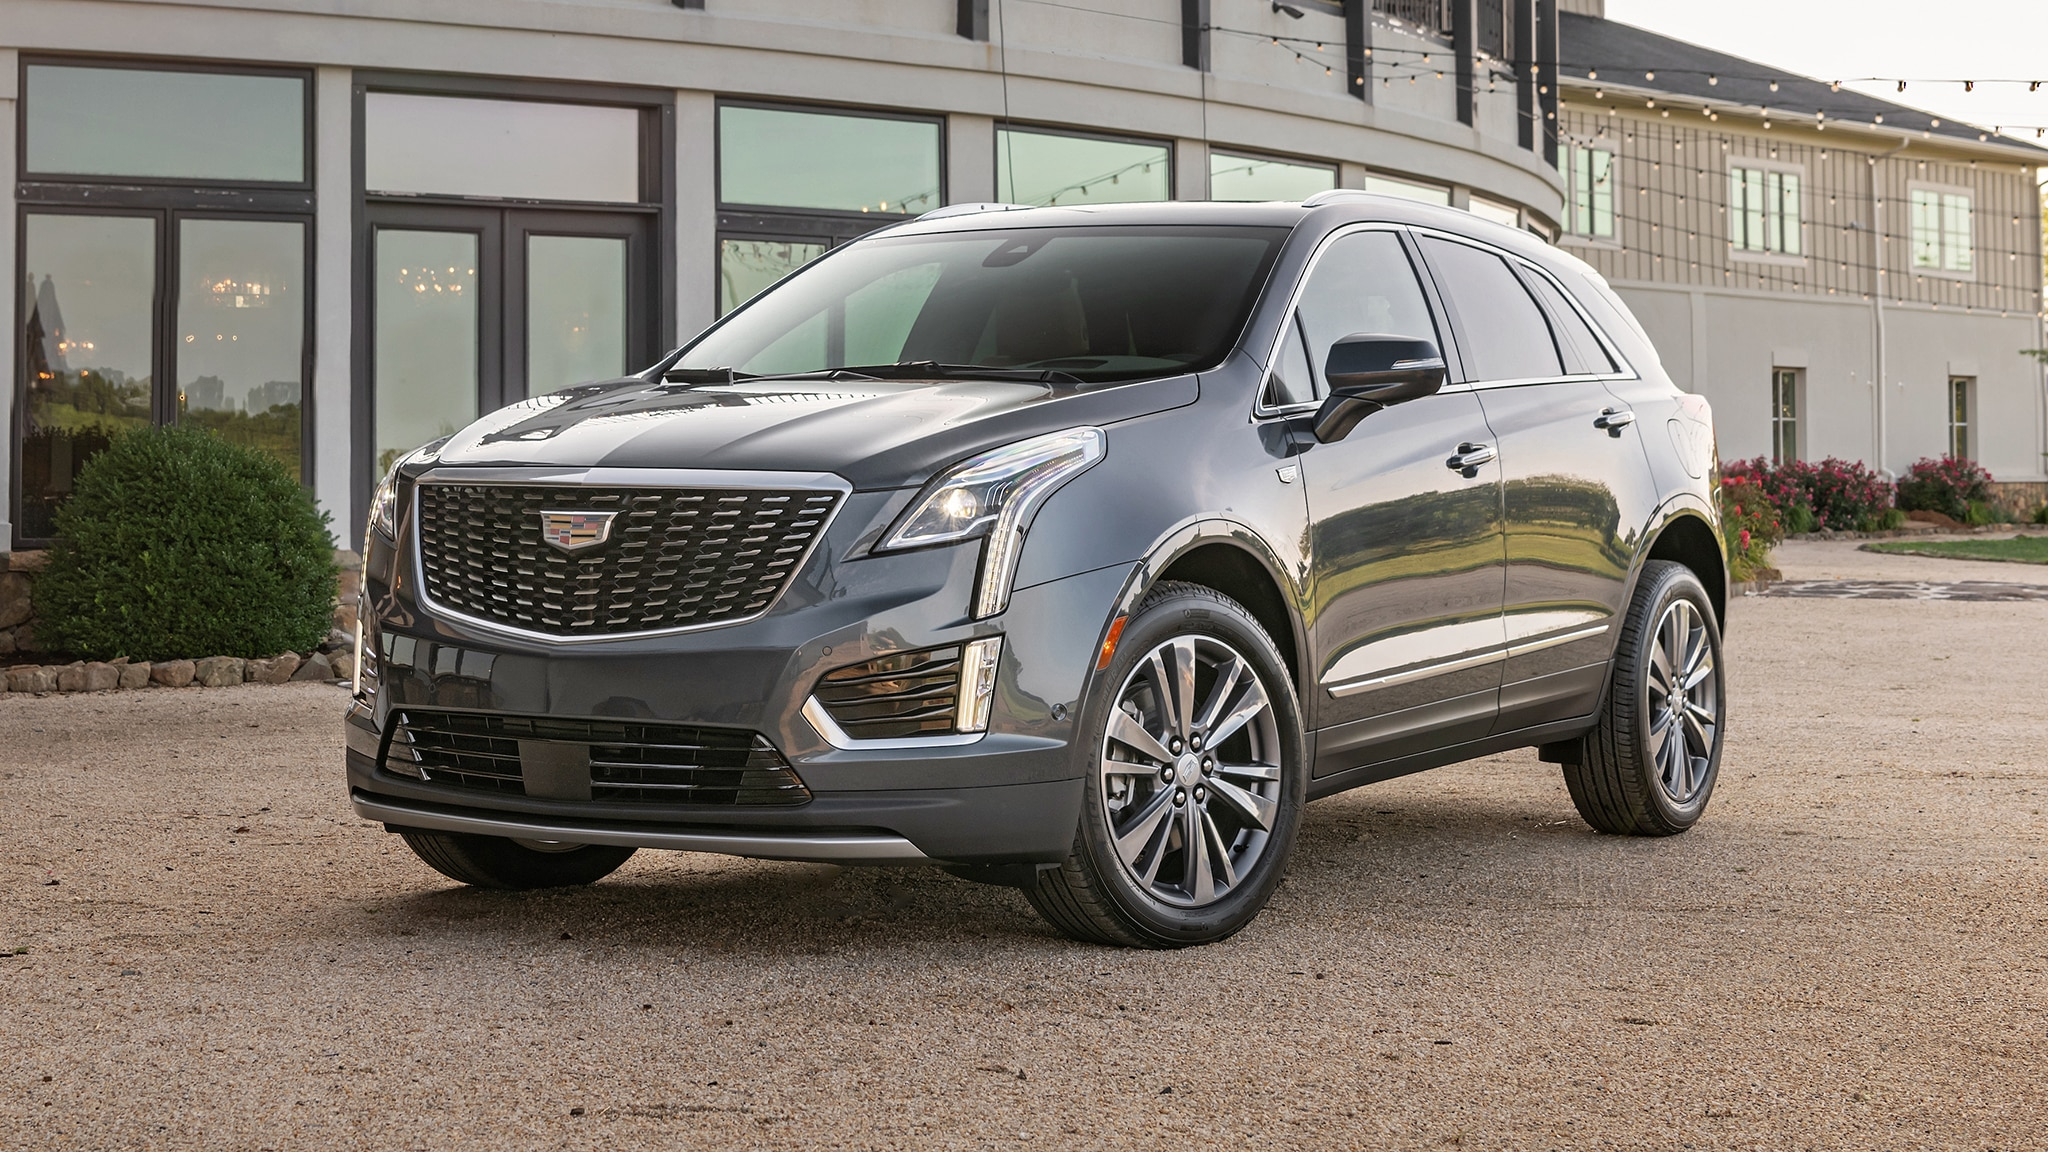 2020 Cadillac Xt5 Review Interior Price Specs >> 2020 Cadillac Xt5 Here S What S New Automobile Magazine